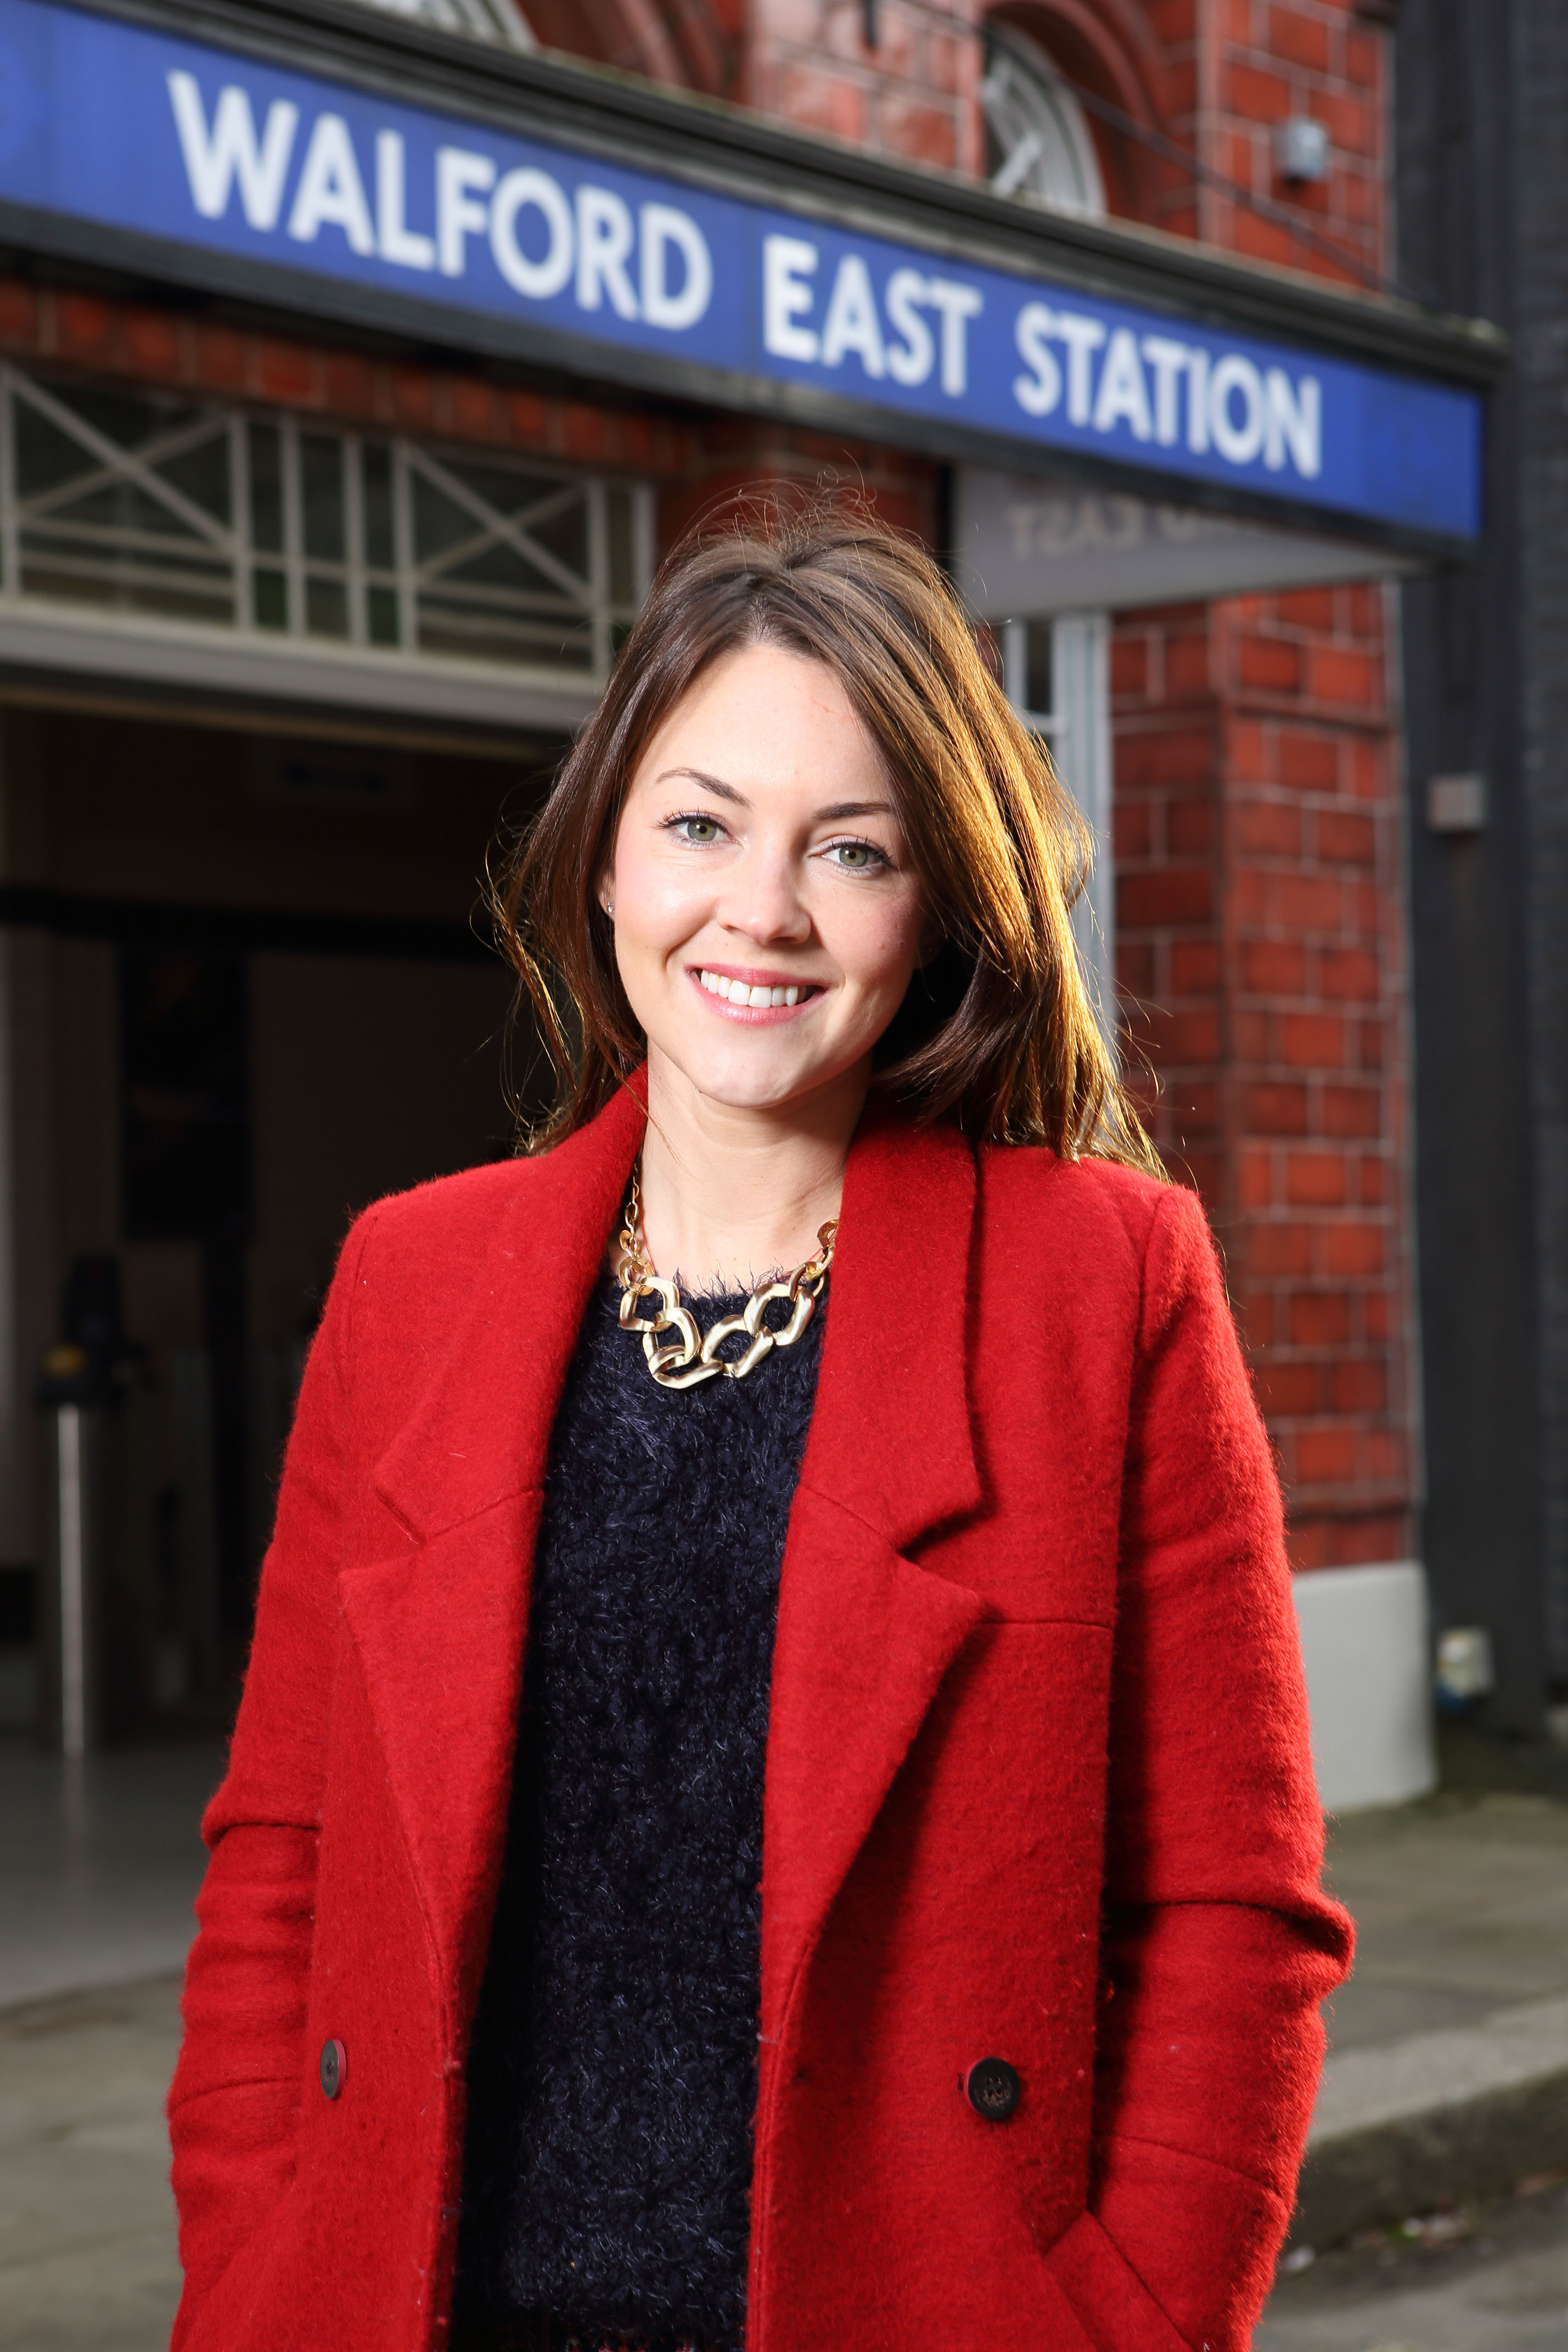 EastEnders viewers already left asking: 'Where has Stacey Slater gone?'